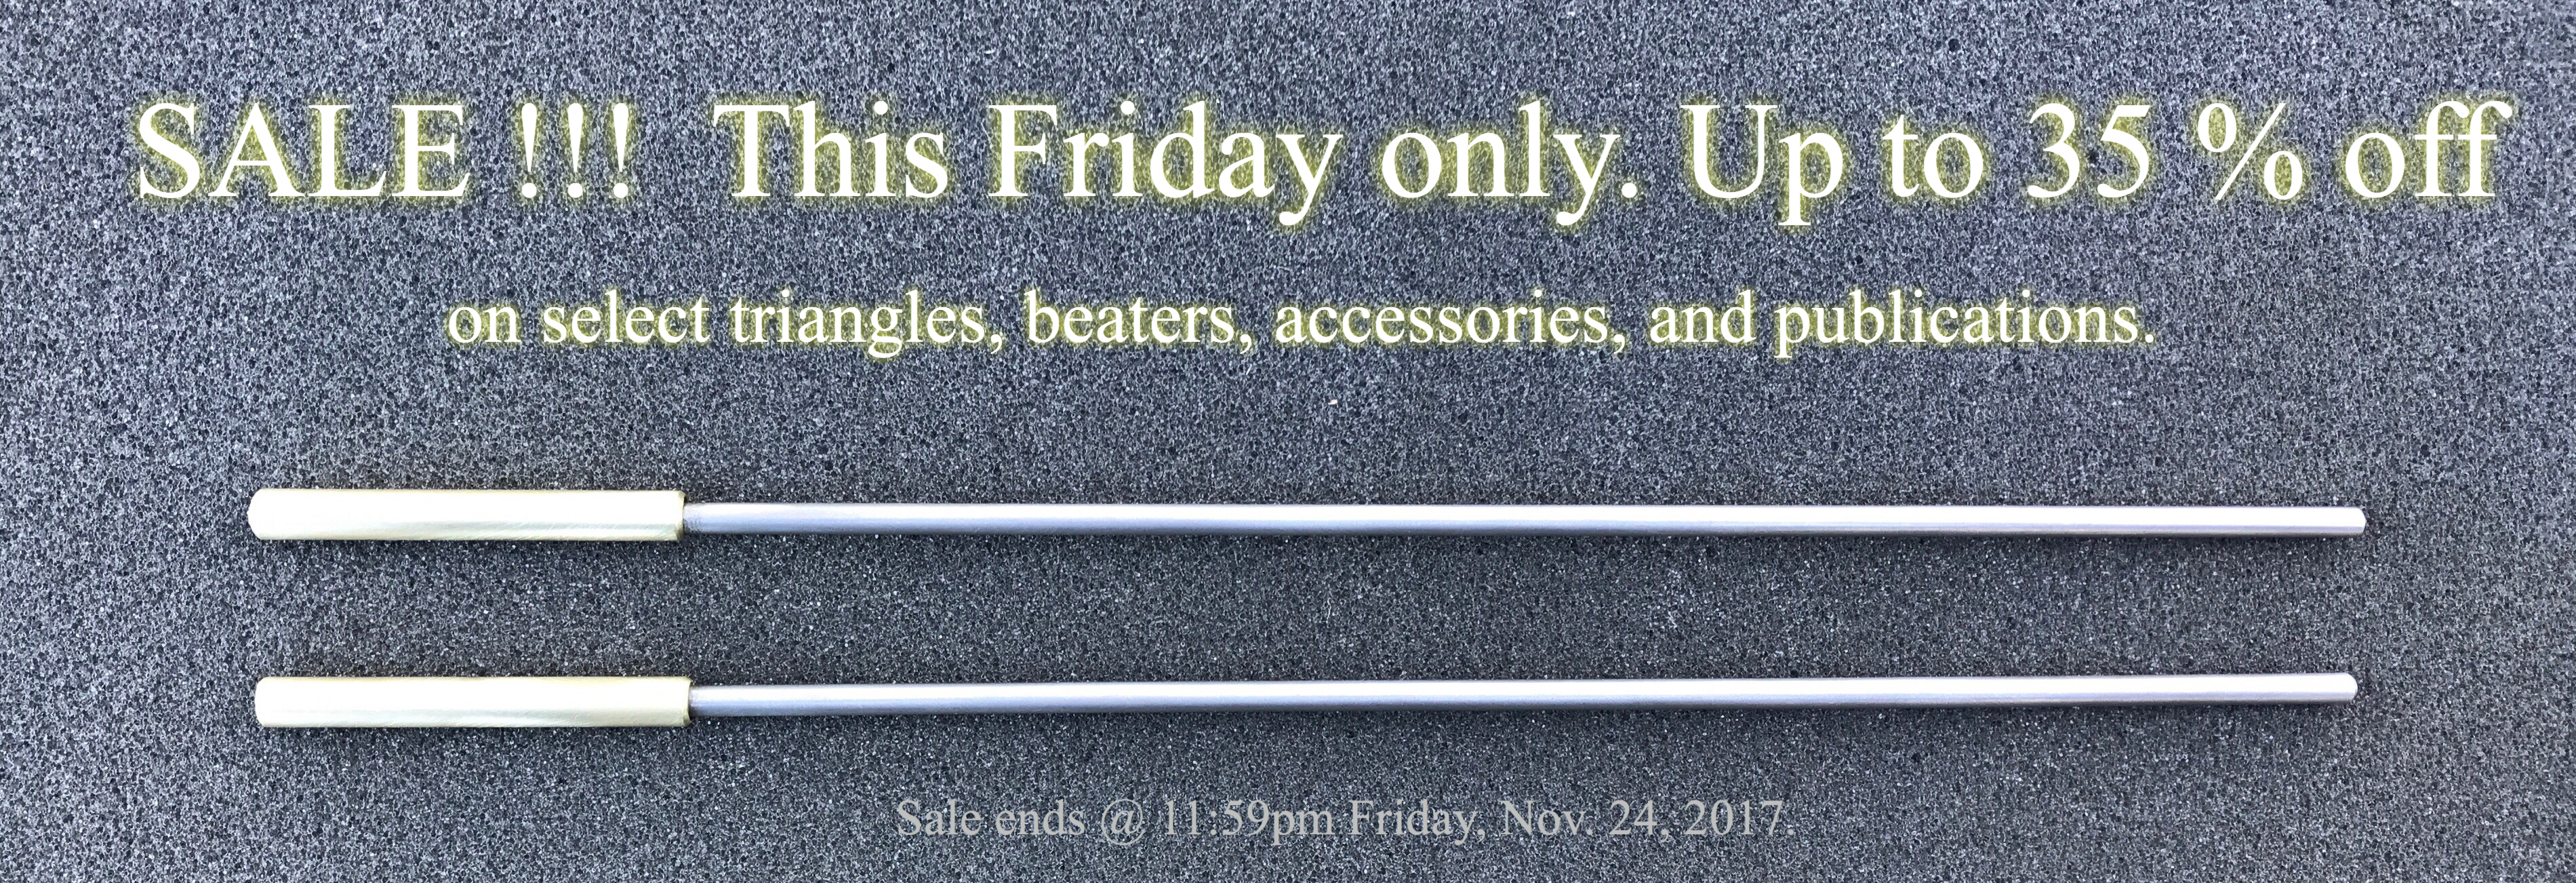 banner-sale-friday-nov-2017.jpg